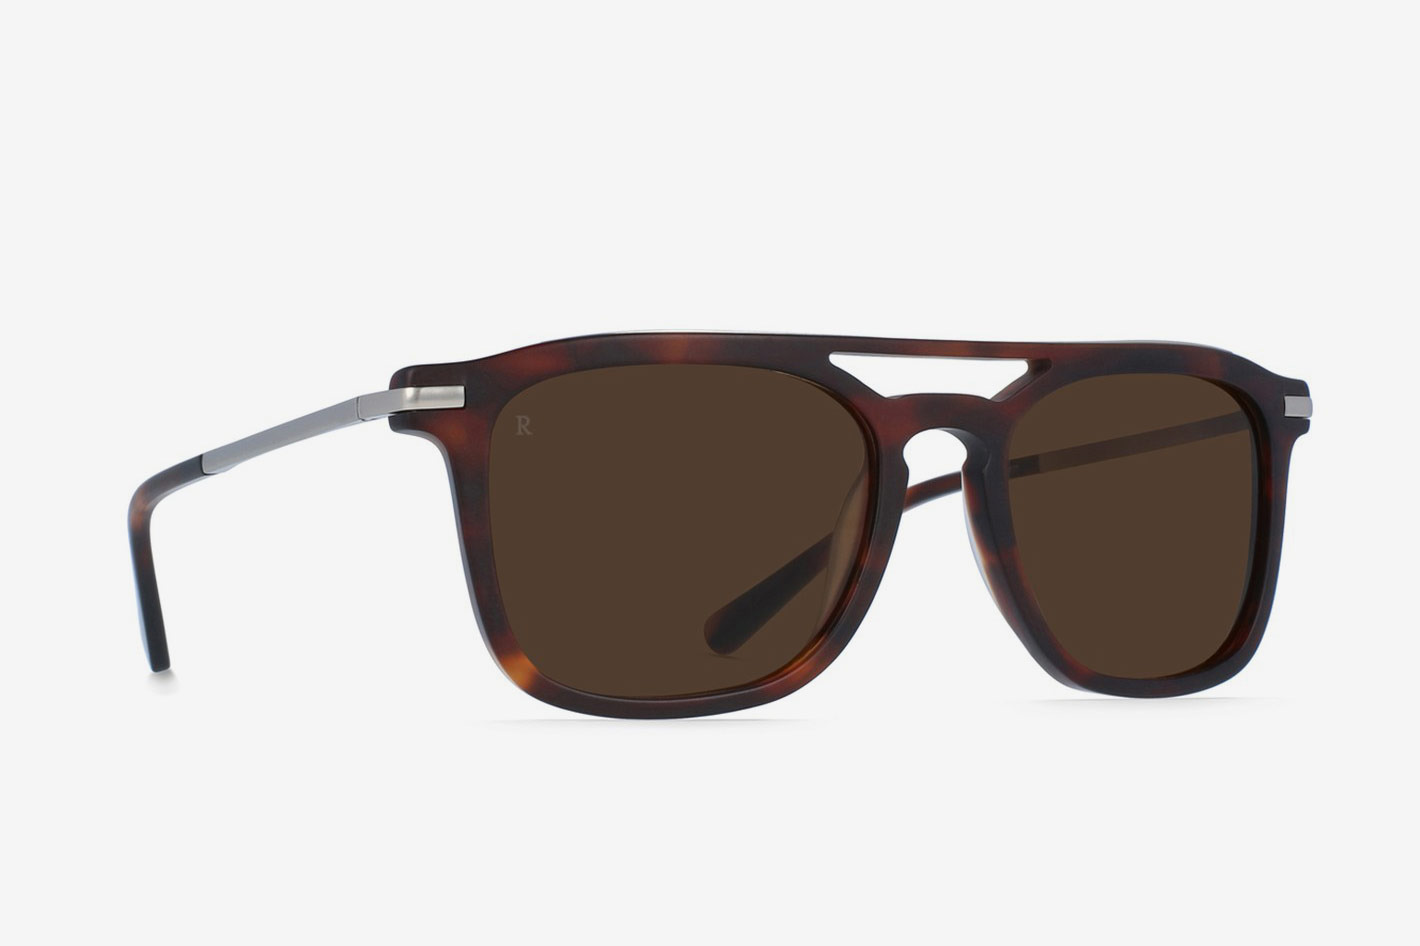 Raen Kettner Sunglasses in Matte Root Beer